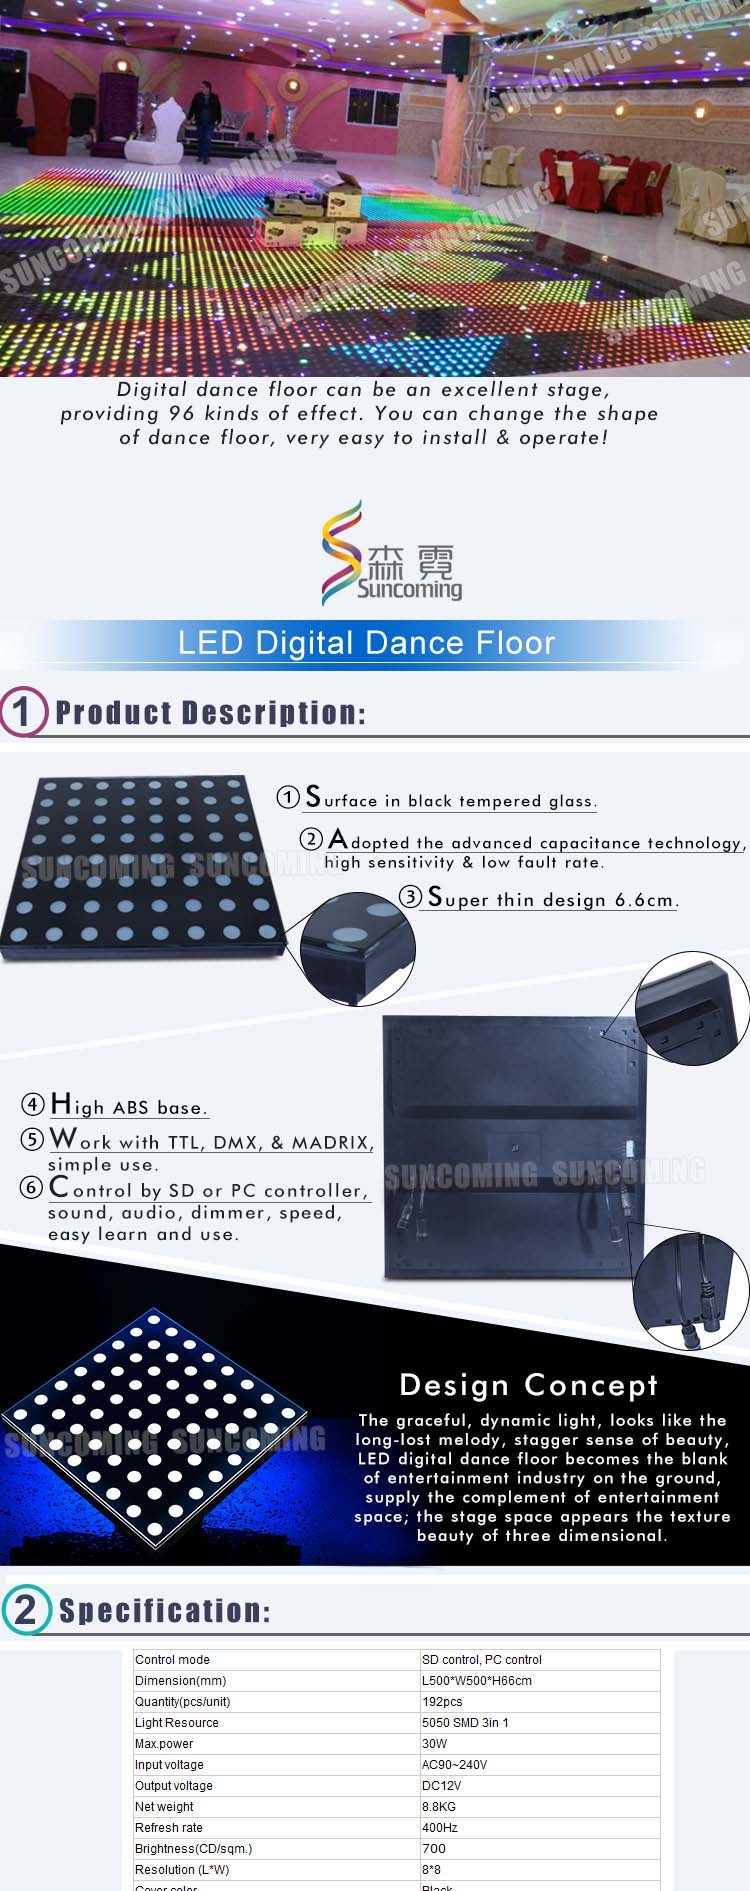 Wedding decoration dj lighting stage light led dance floor china to fix the dance floors both easy install and disassemble no need of professional workers or even hiring a labor you can do it by yourself solutioingenieria Choice Image